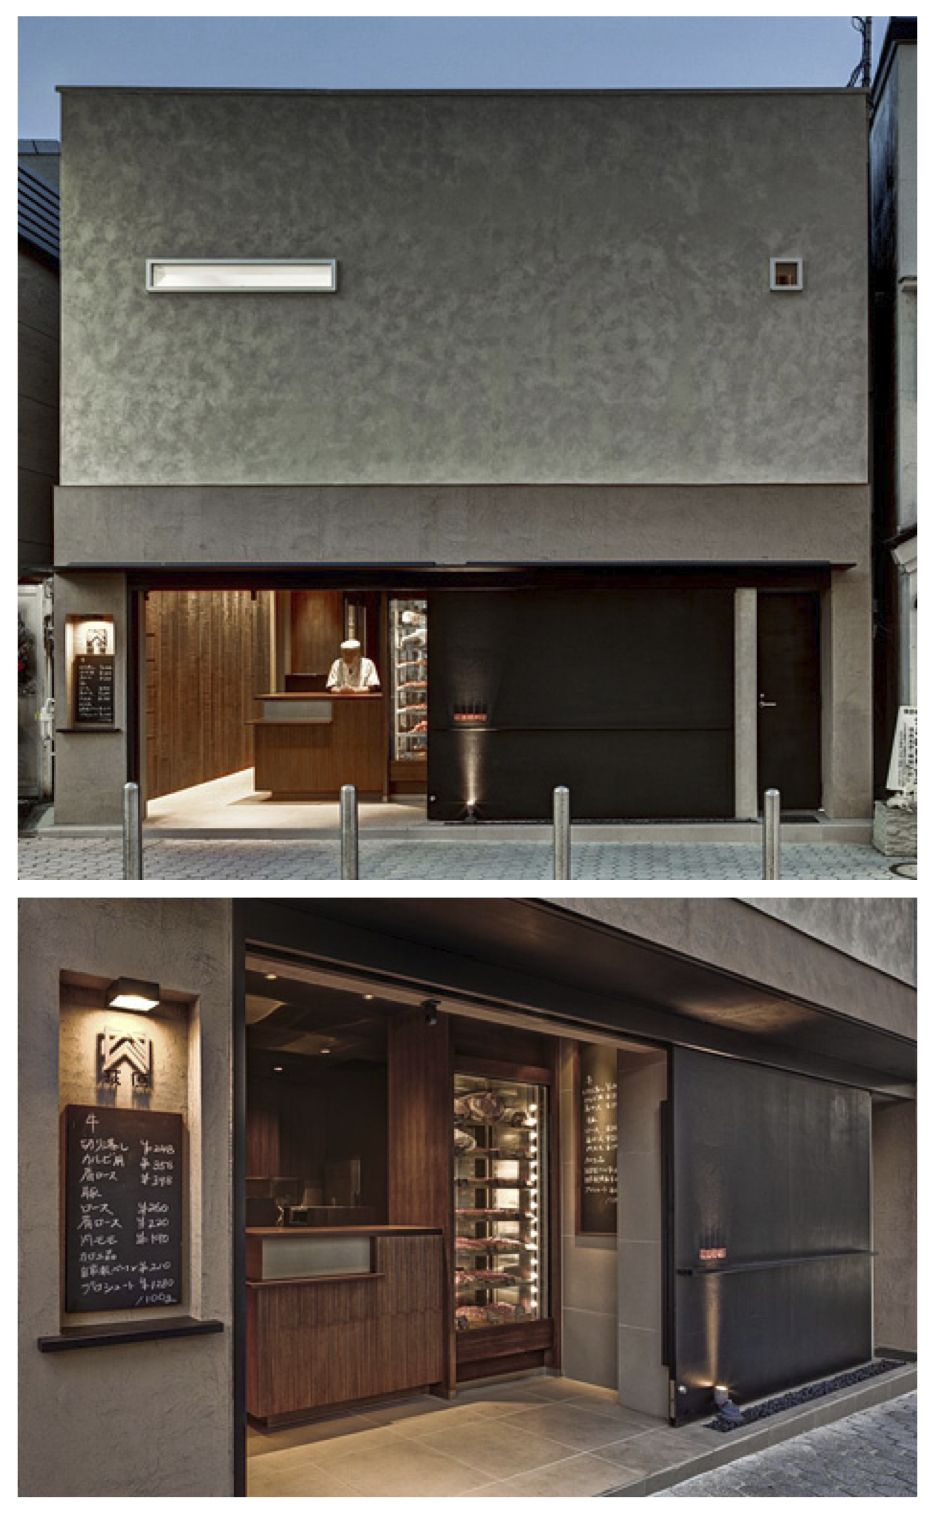 Pin By Yun Jihee On Coffe Shop Retail Facade Restaurant Design Cafe Design